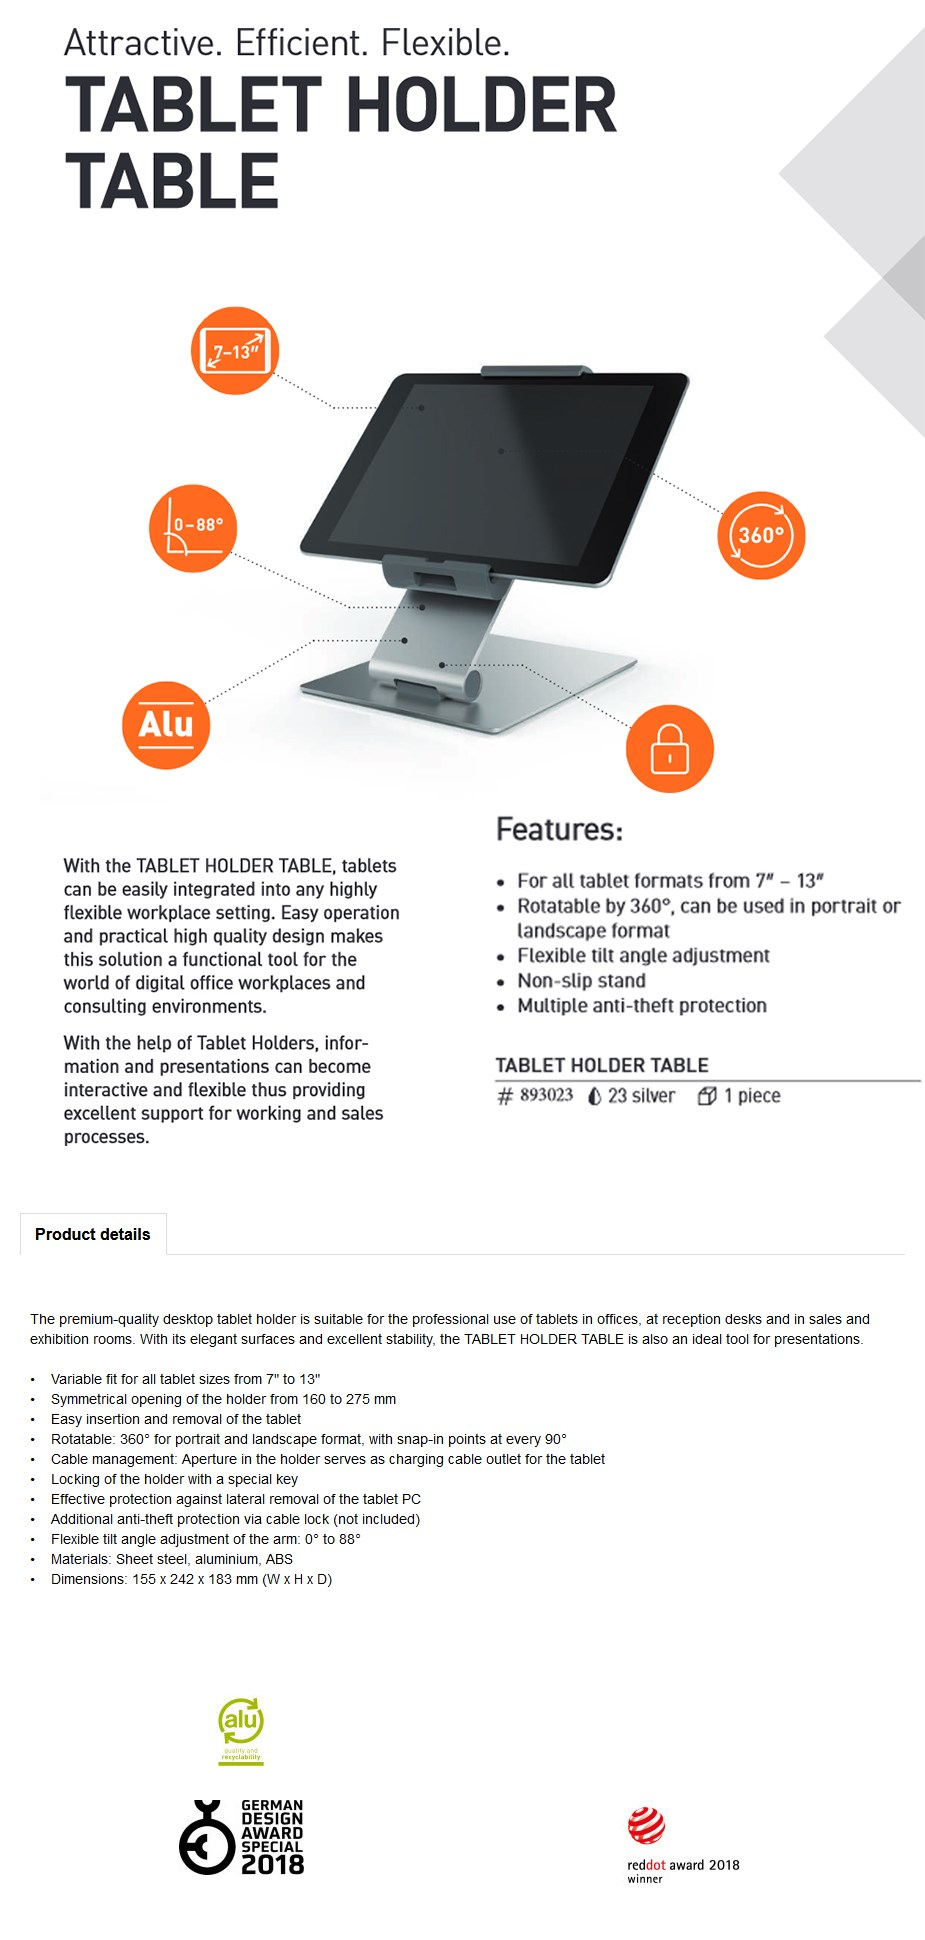 """Kensington 893023 Durable Universal 7 - 13"""" Tablet Holder with Desk Stand - Overview 1"""